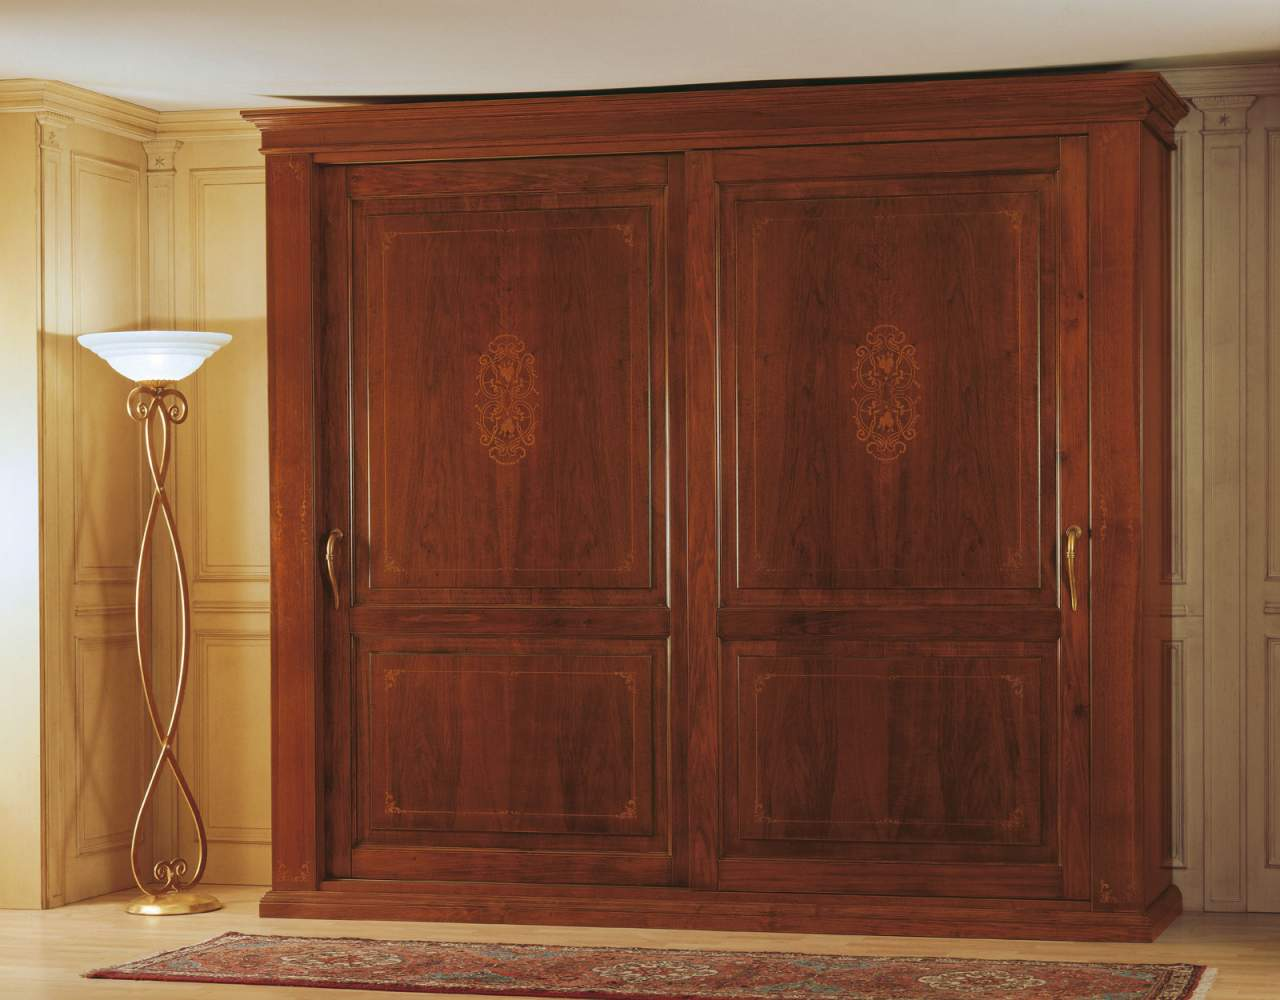 19th century french bedroom, wardorbe with two sliding doors